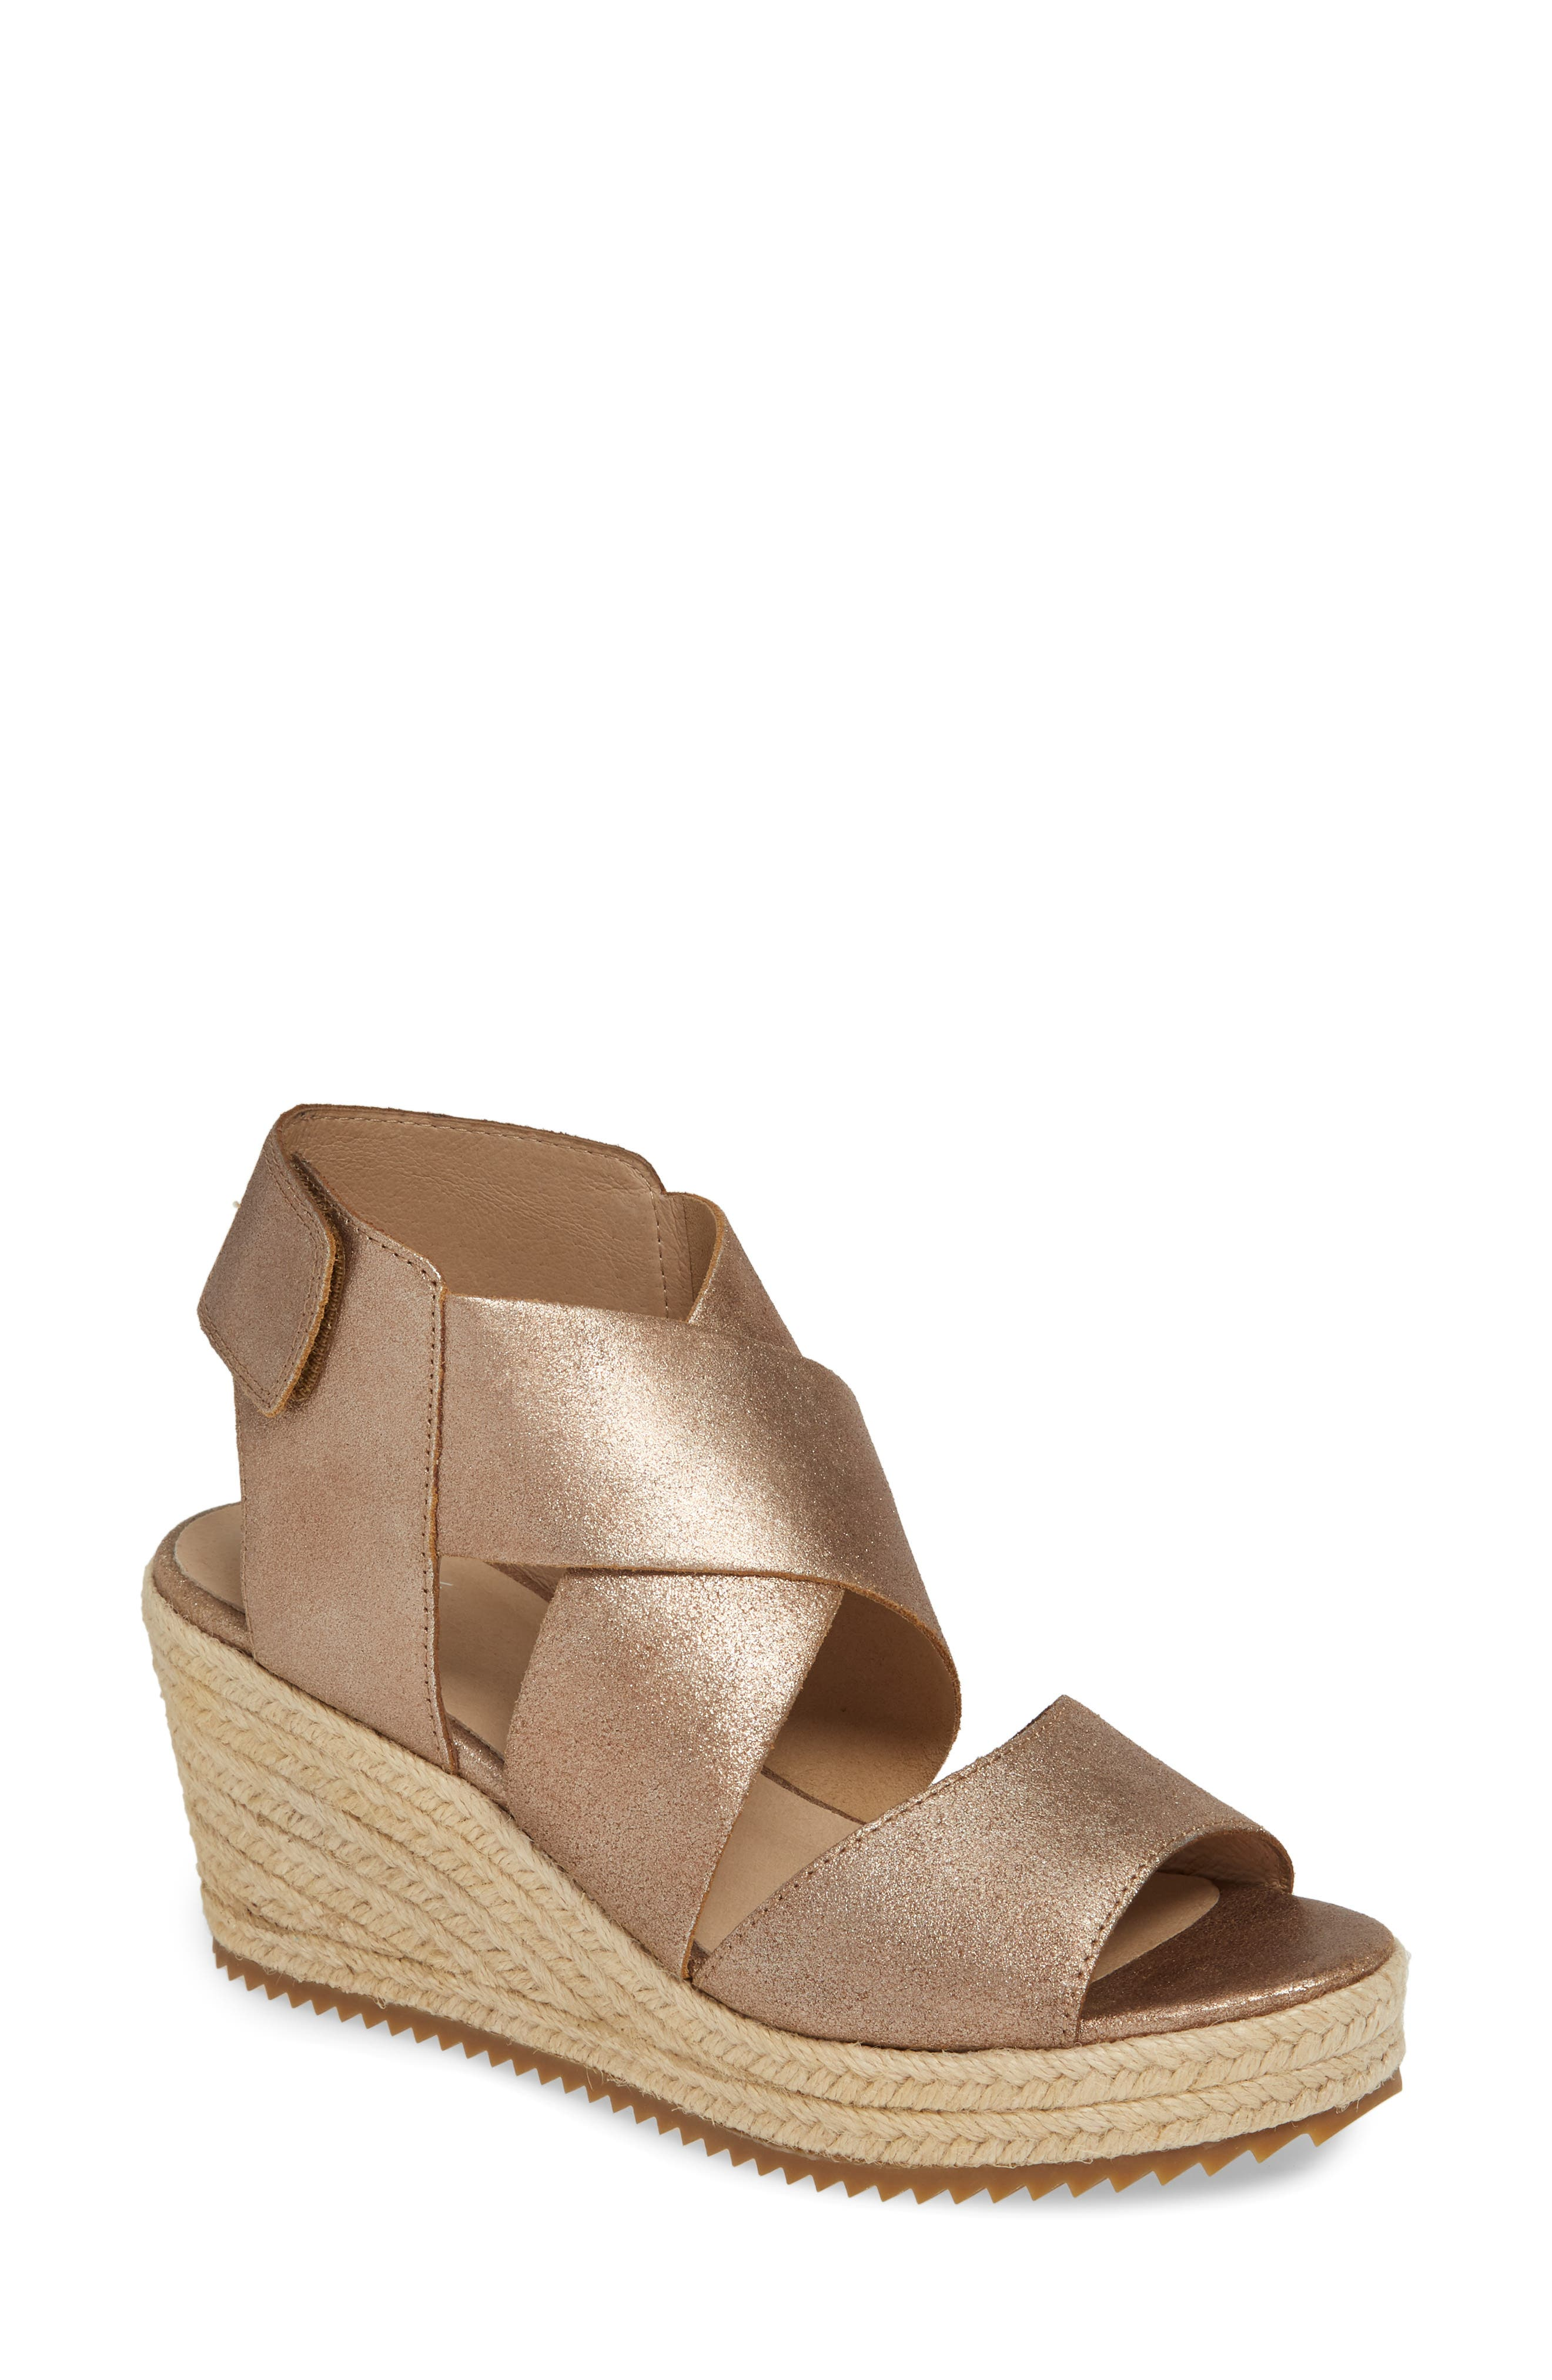 EILEEN FISHER 'Willow' Espadrille Wedge Sandal, Main, color, 041